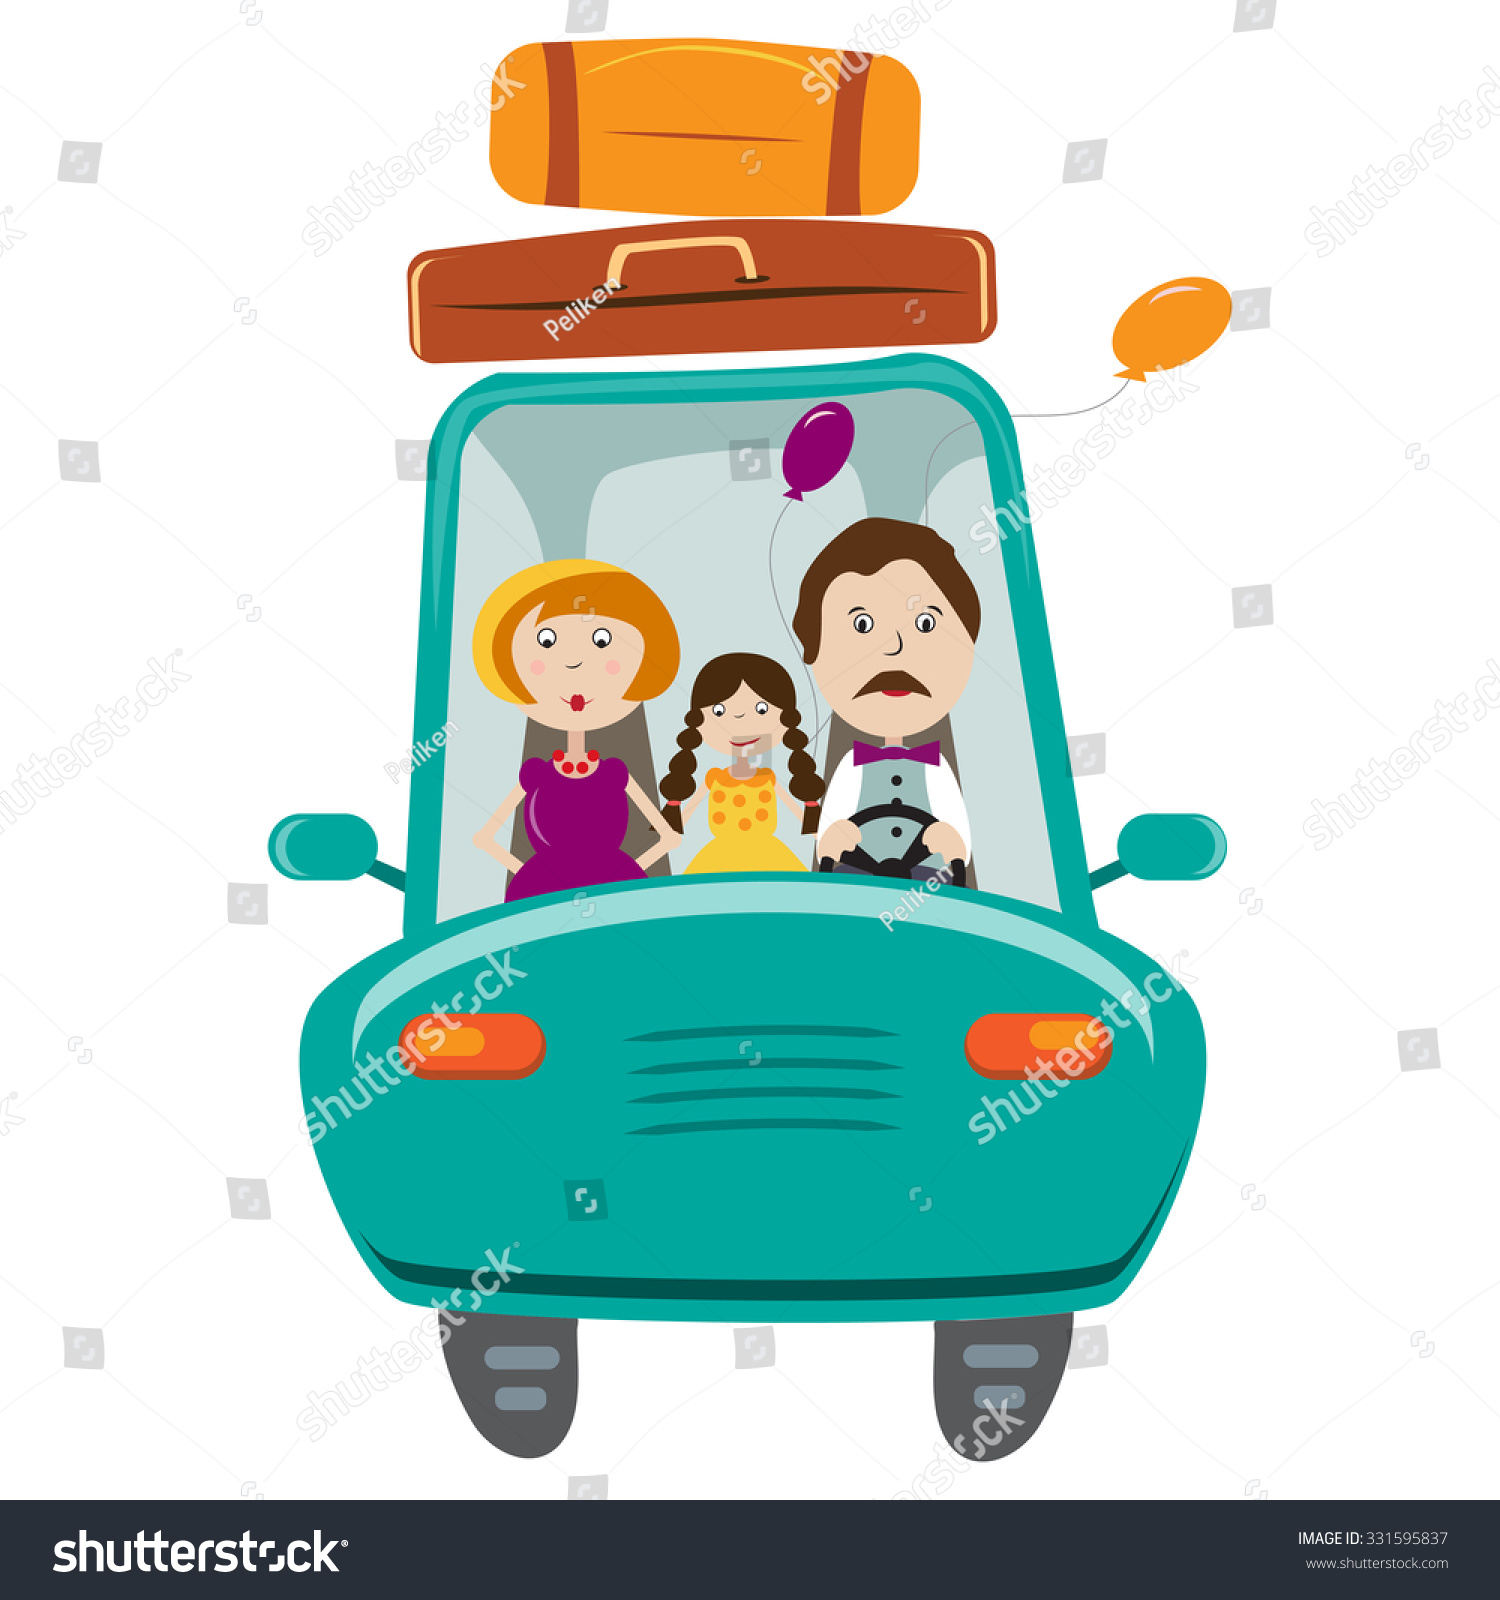 clipart of family vacation - photo #49